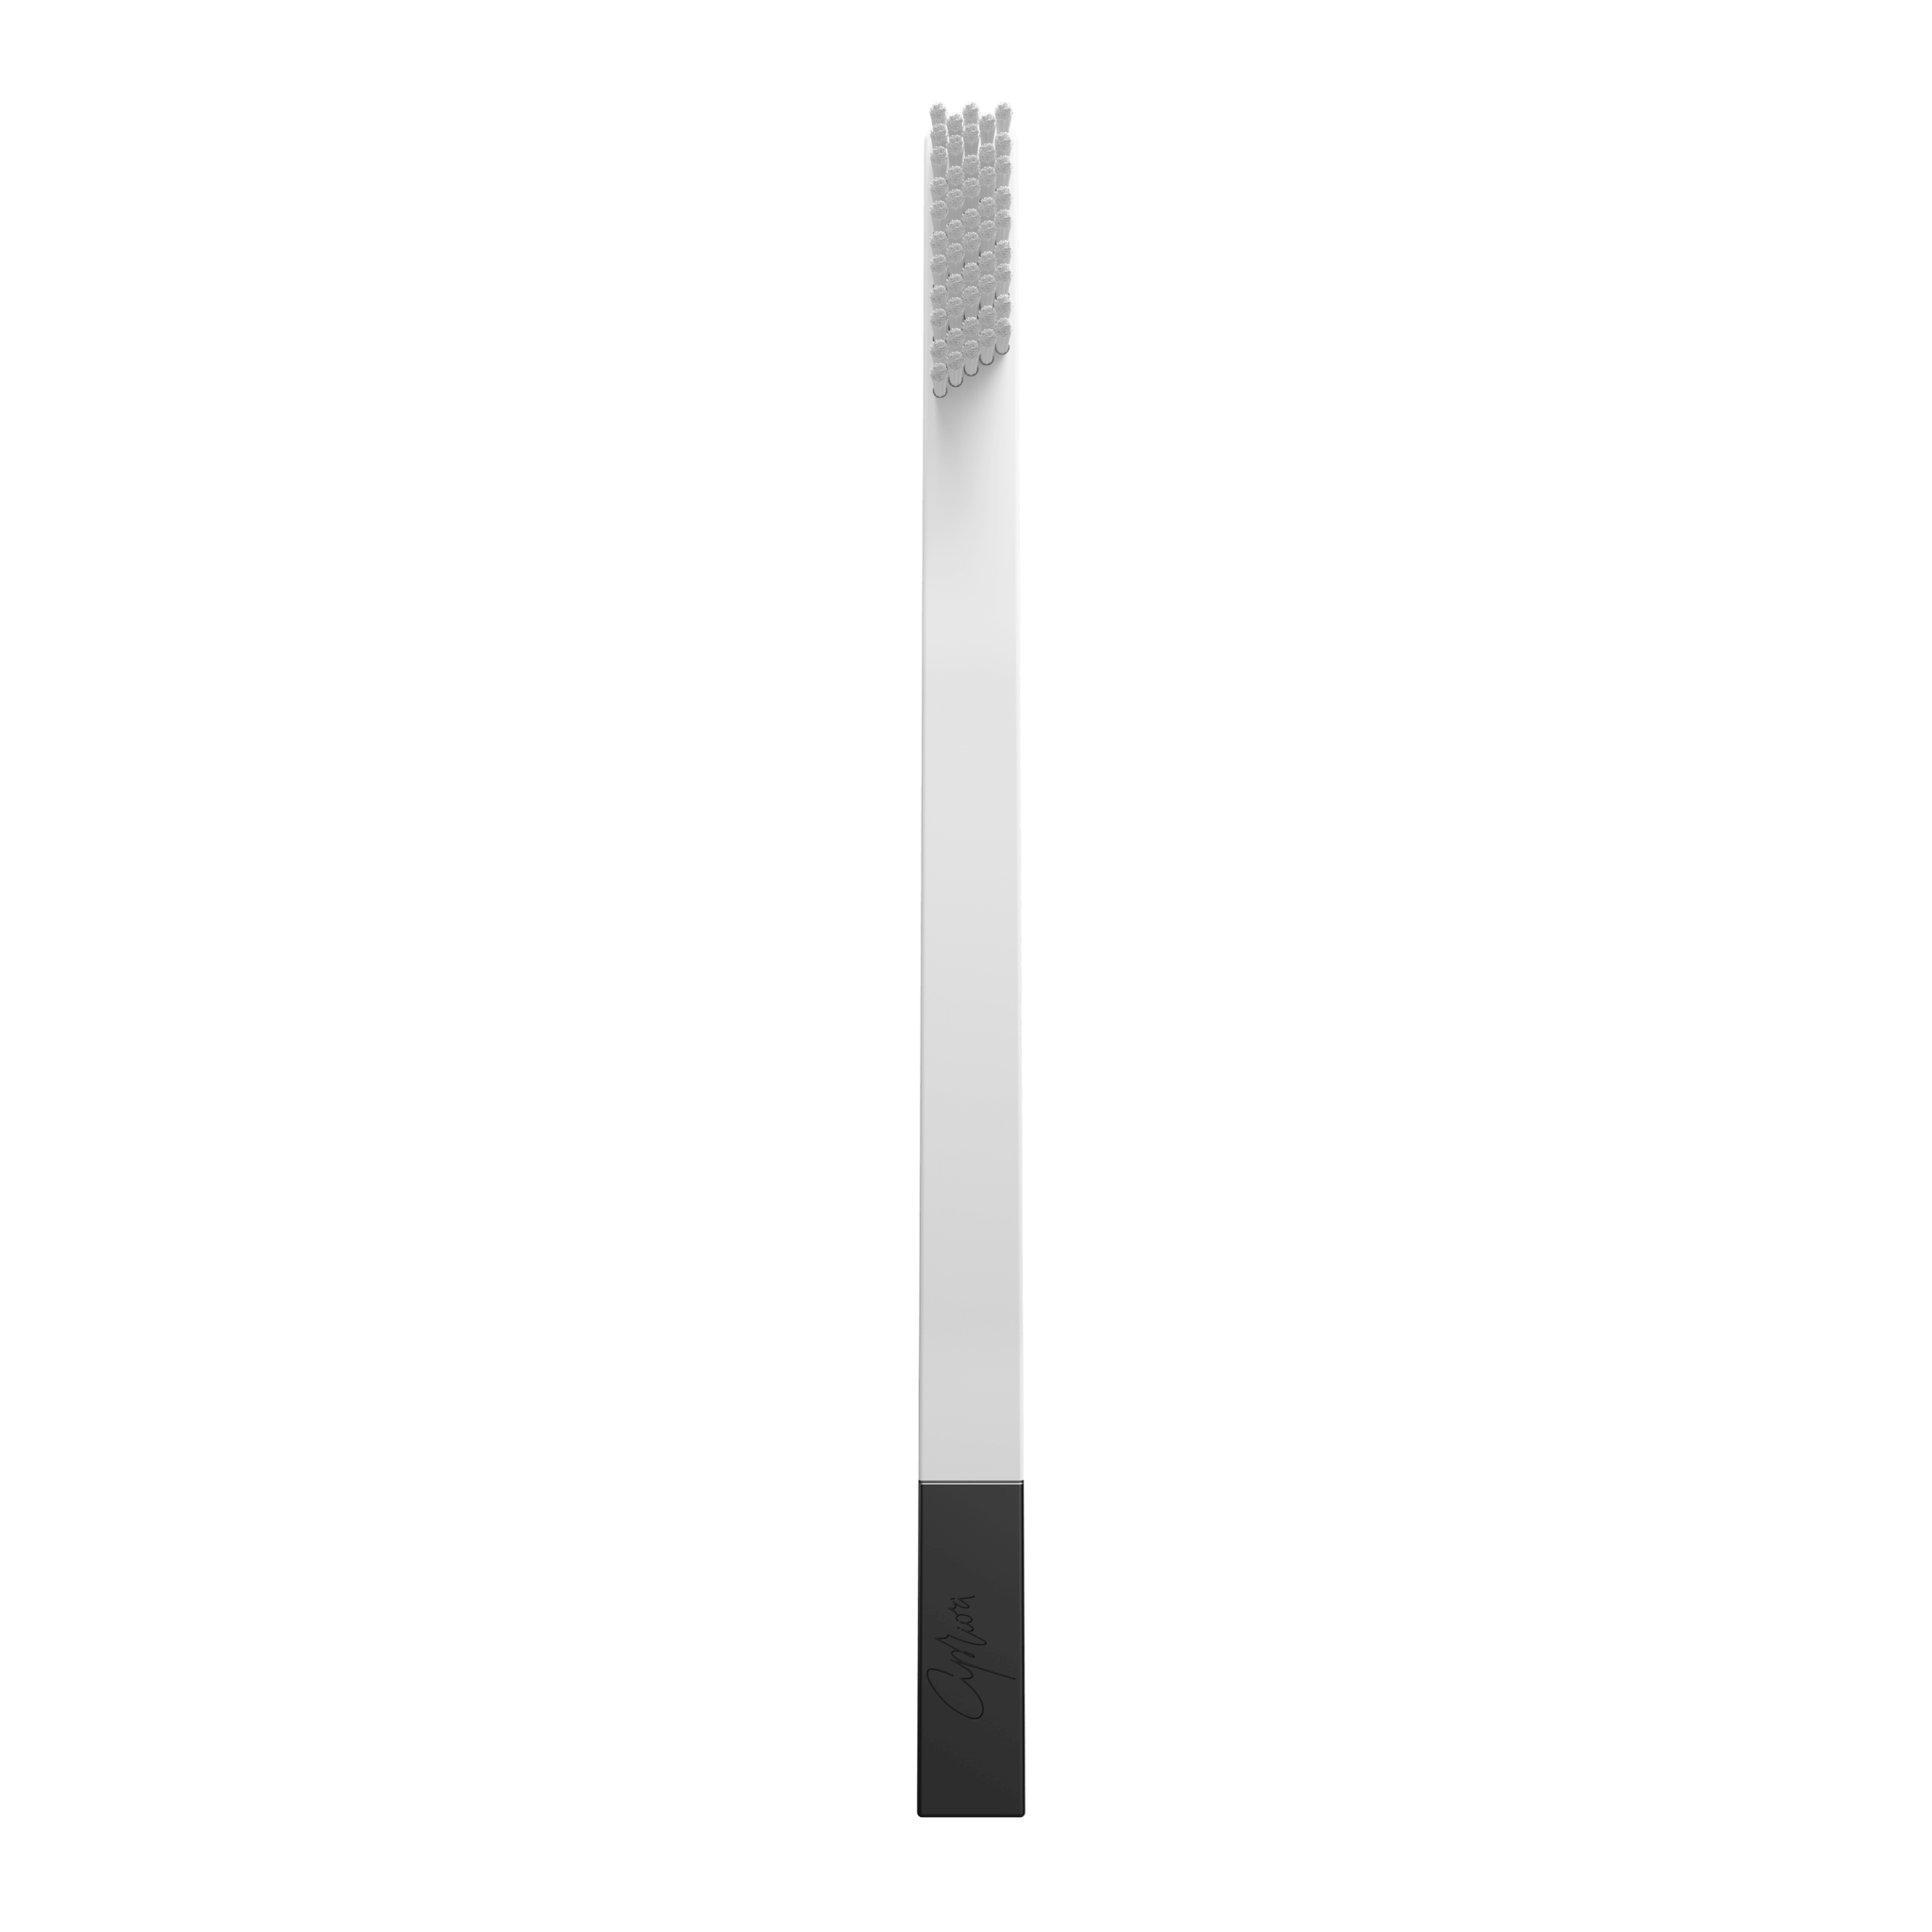 SLIM by Apriori white & black disposable toothbrush